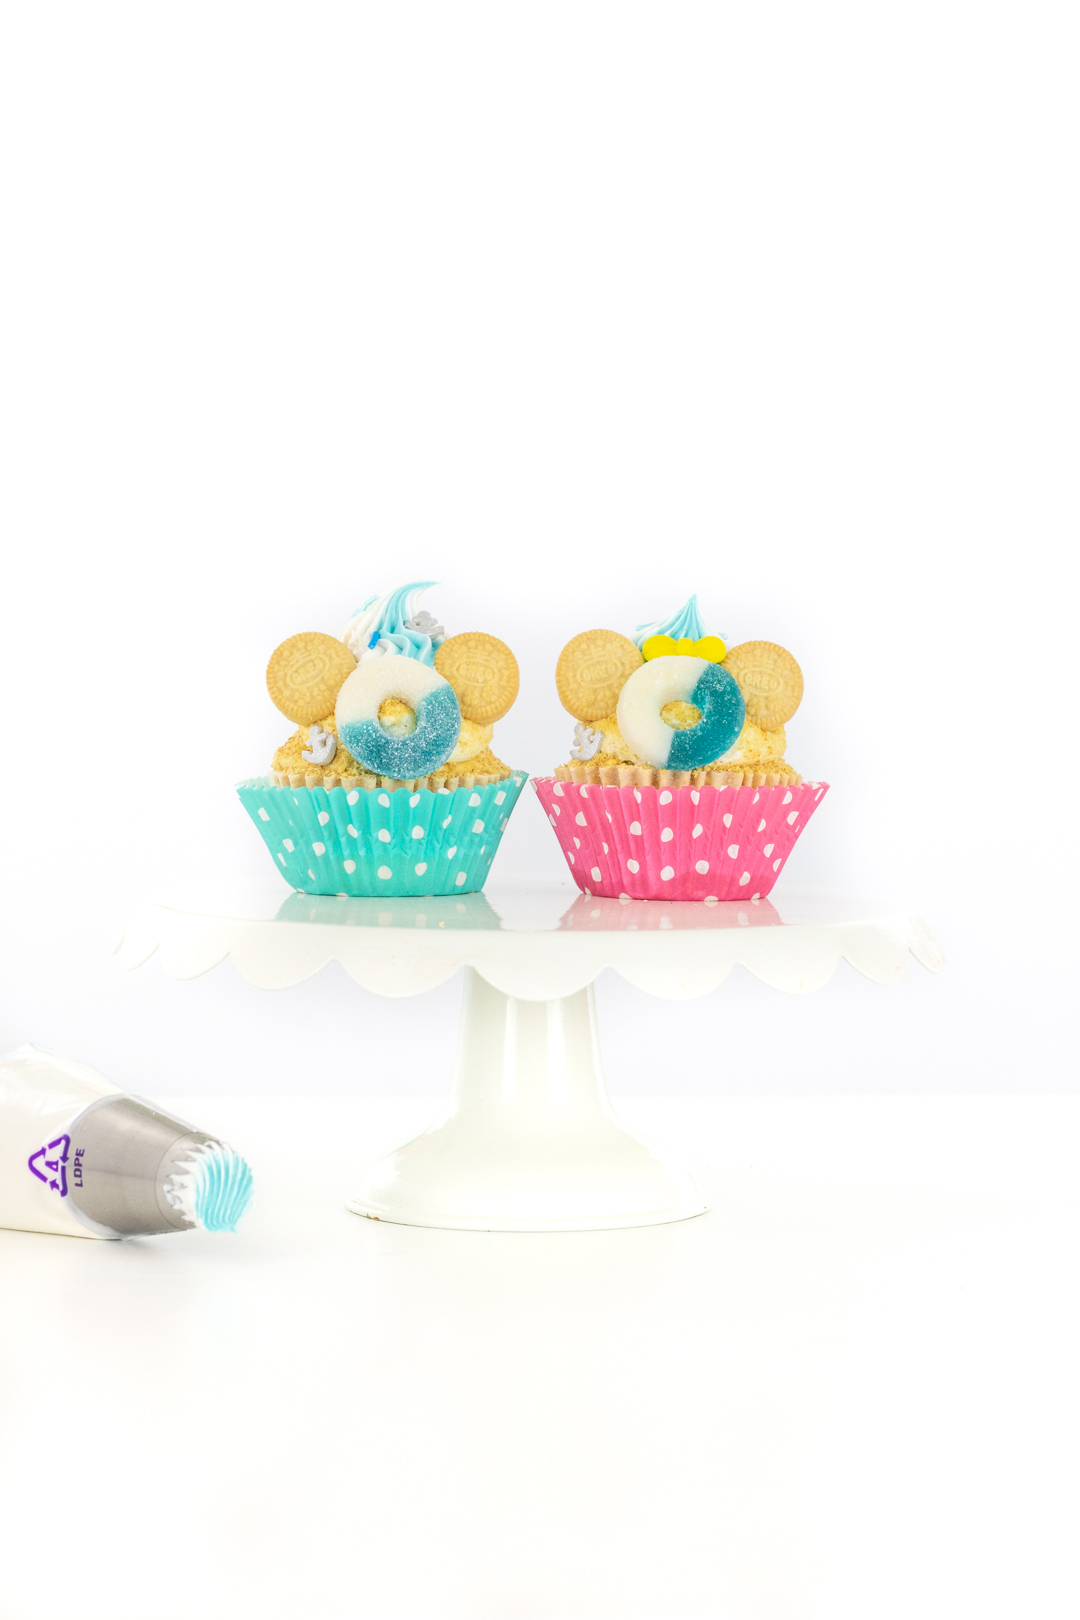 mickey and minnie cruise cupcakes with mini OREO cookies for ears